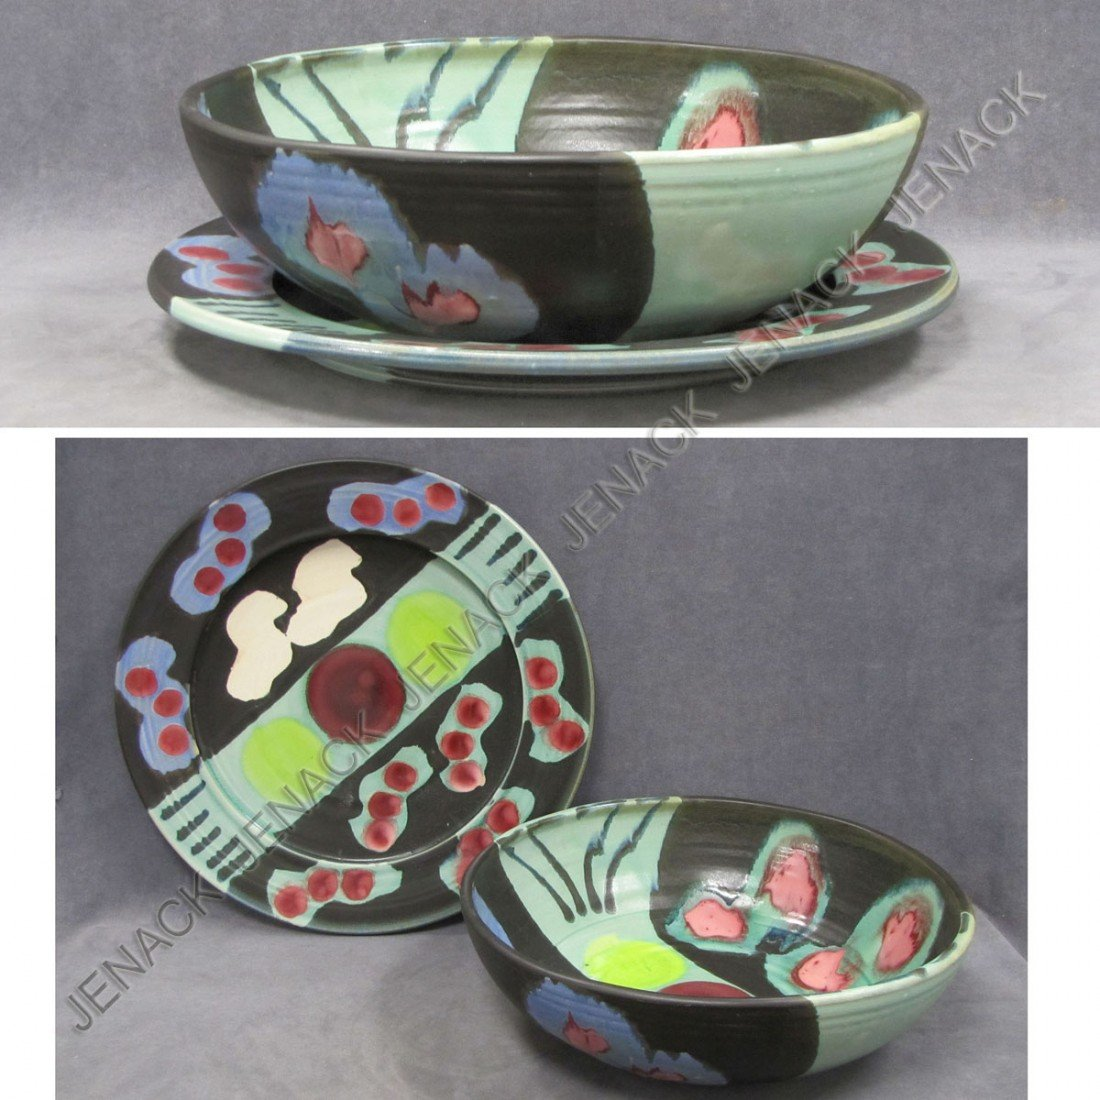 18: AMERICAN ART POTTERY BOWL & UNDERPLATE, SIGNED